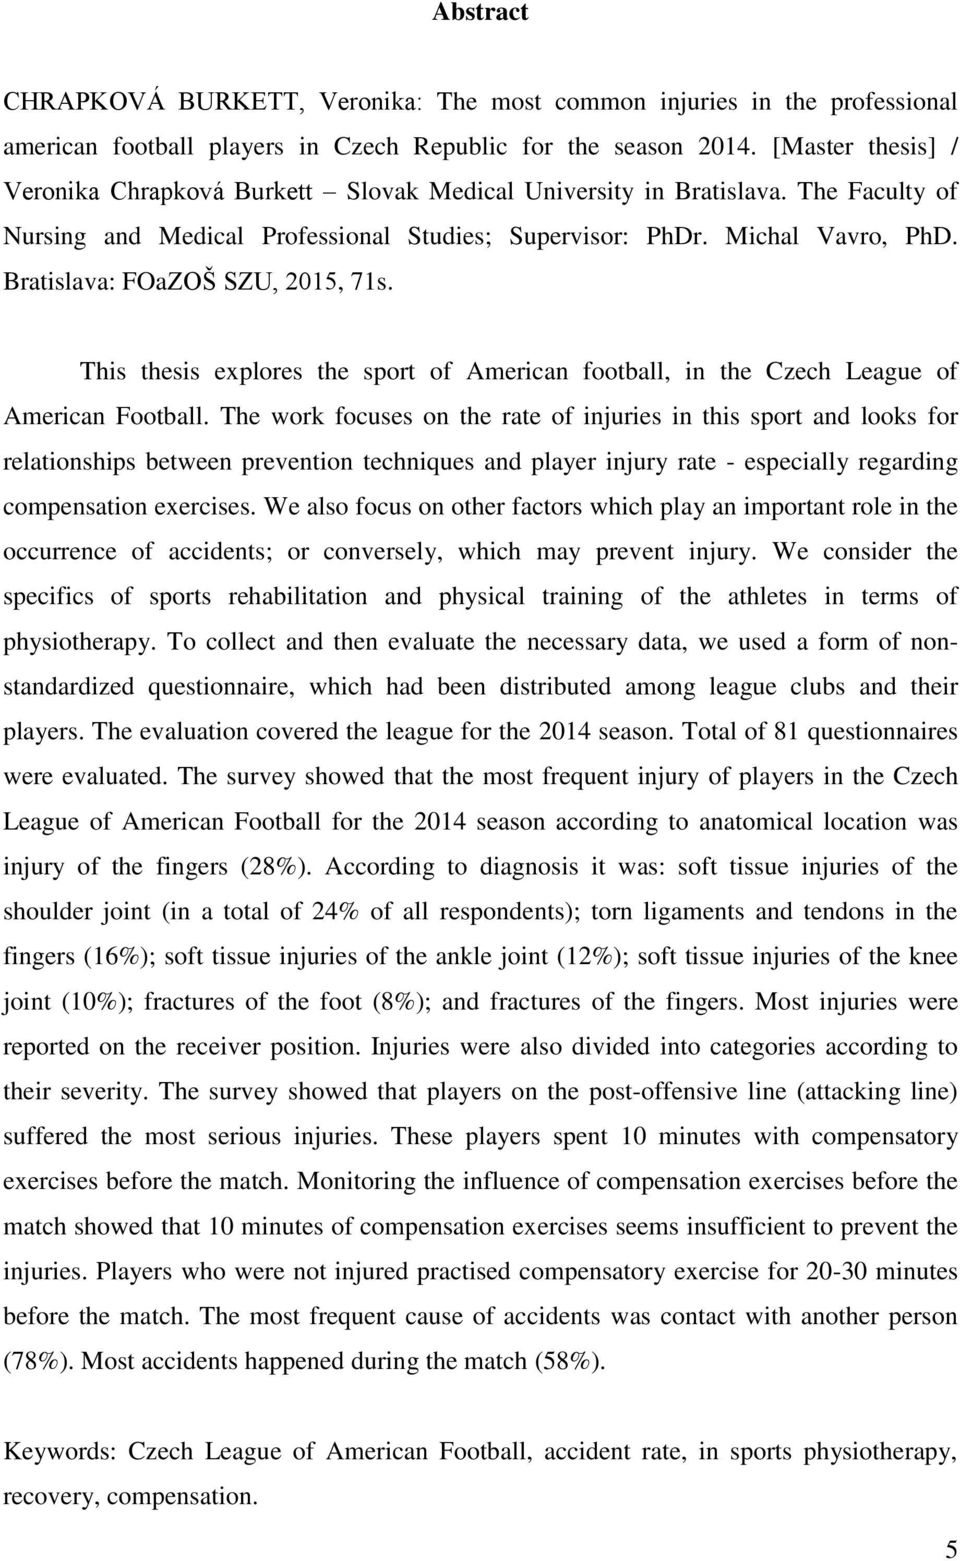 Bratislava: FOaZOŠ SZU, 2015, 71s. This thesis explores the sport of American football, in the Czech League of American Football.